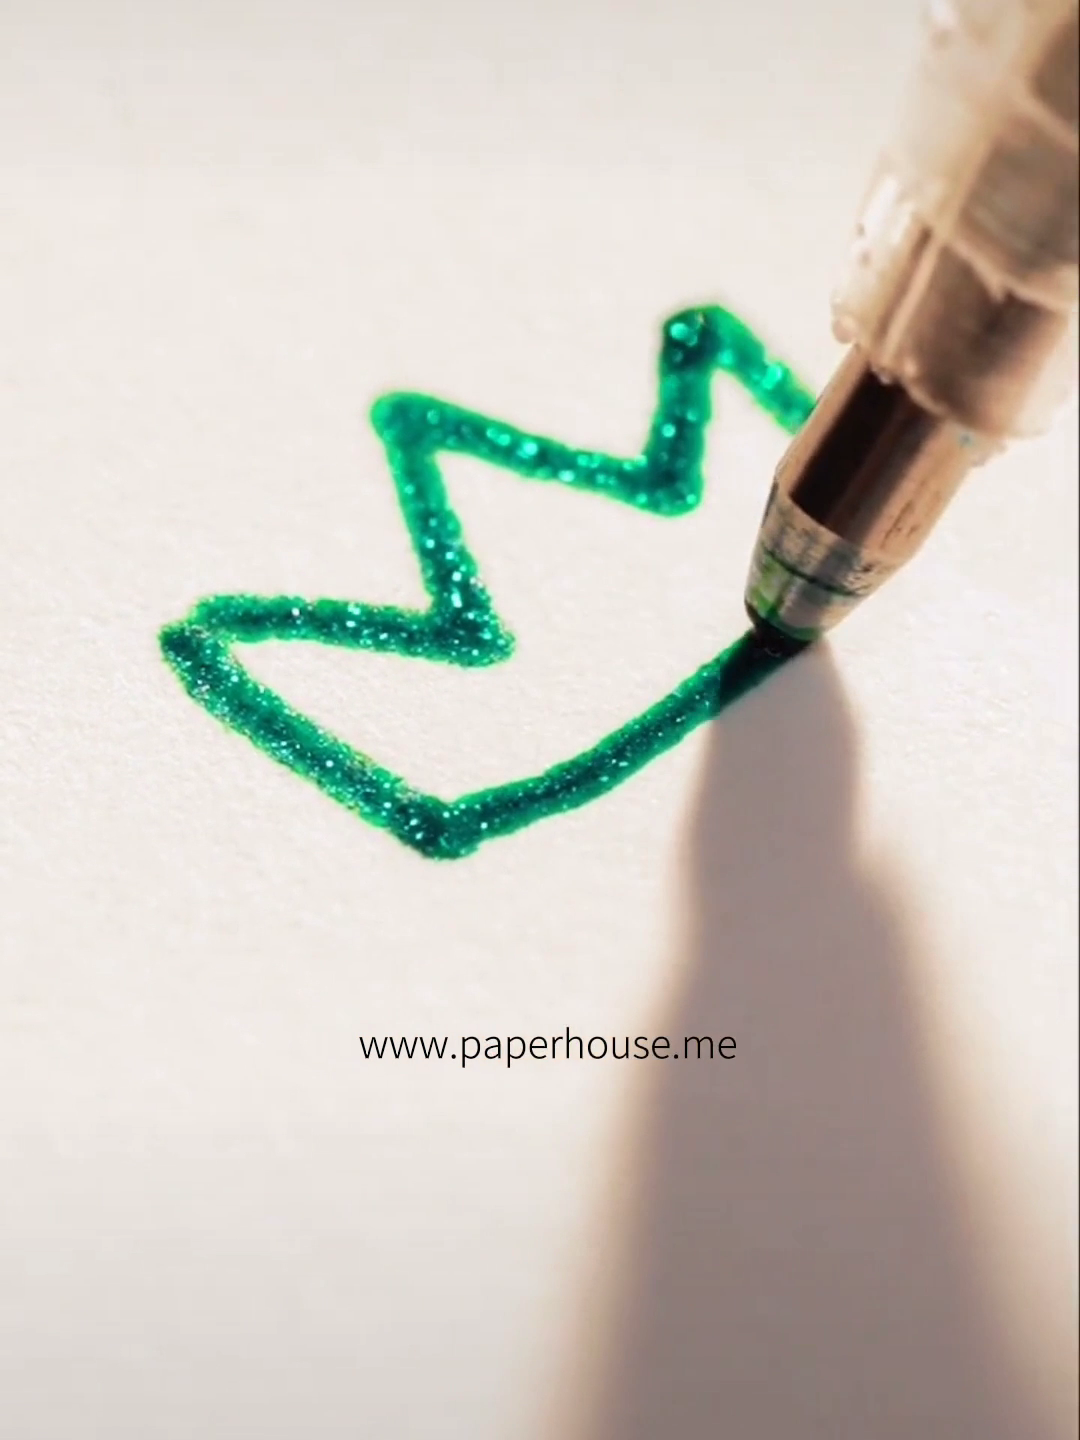 """, Glitter Bujo Doodles?www.paperhouse.me?Save $3 with code """"PIN3""""?Paperhouse Stationery, My cartoon Blog, My cartoon Blog"""